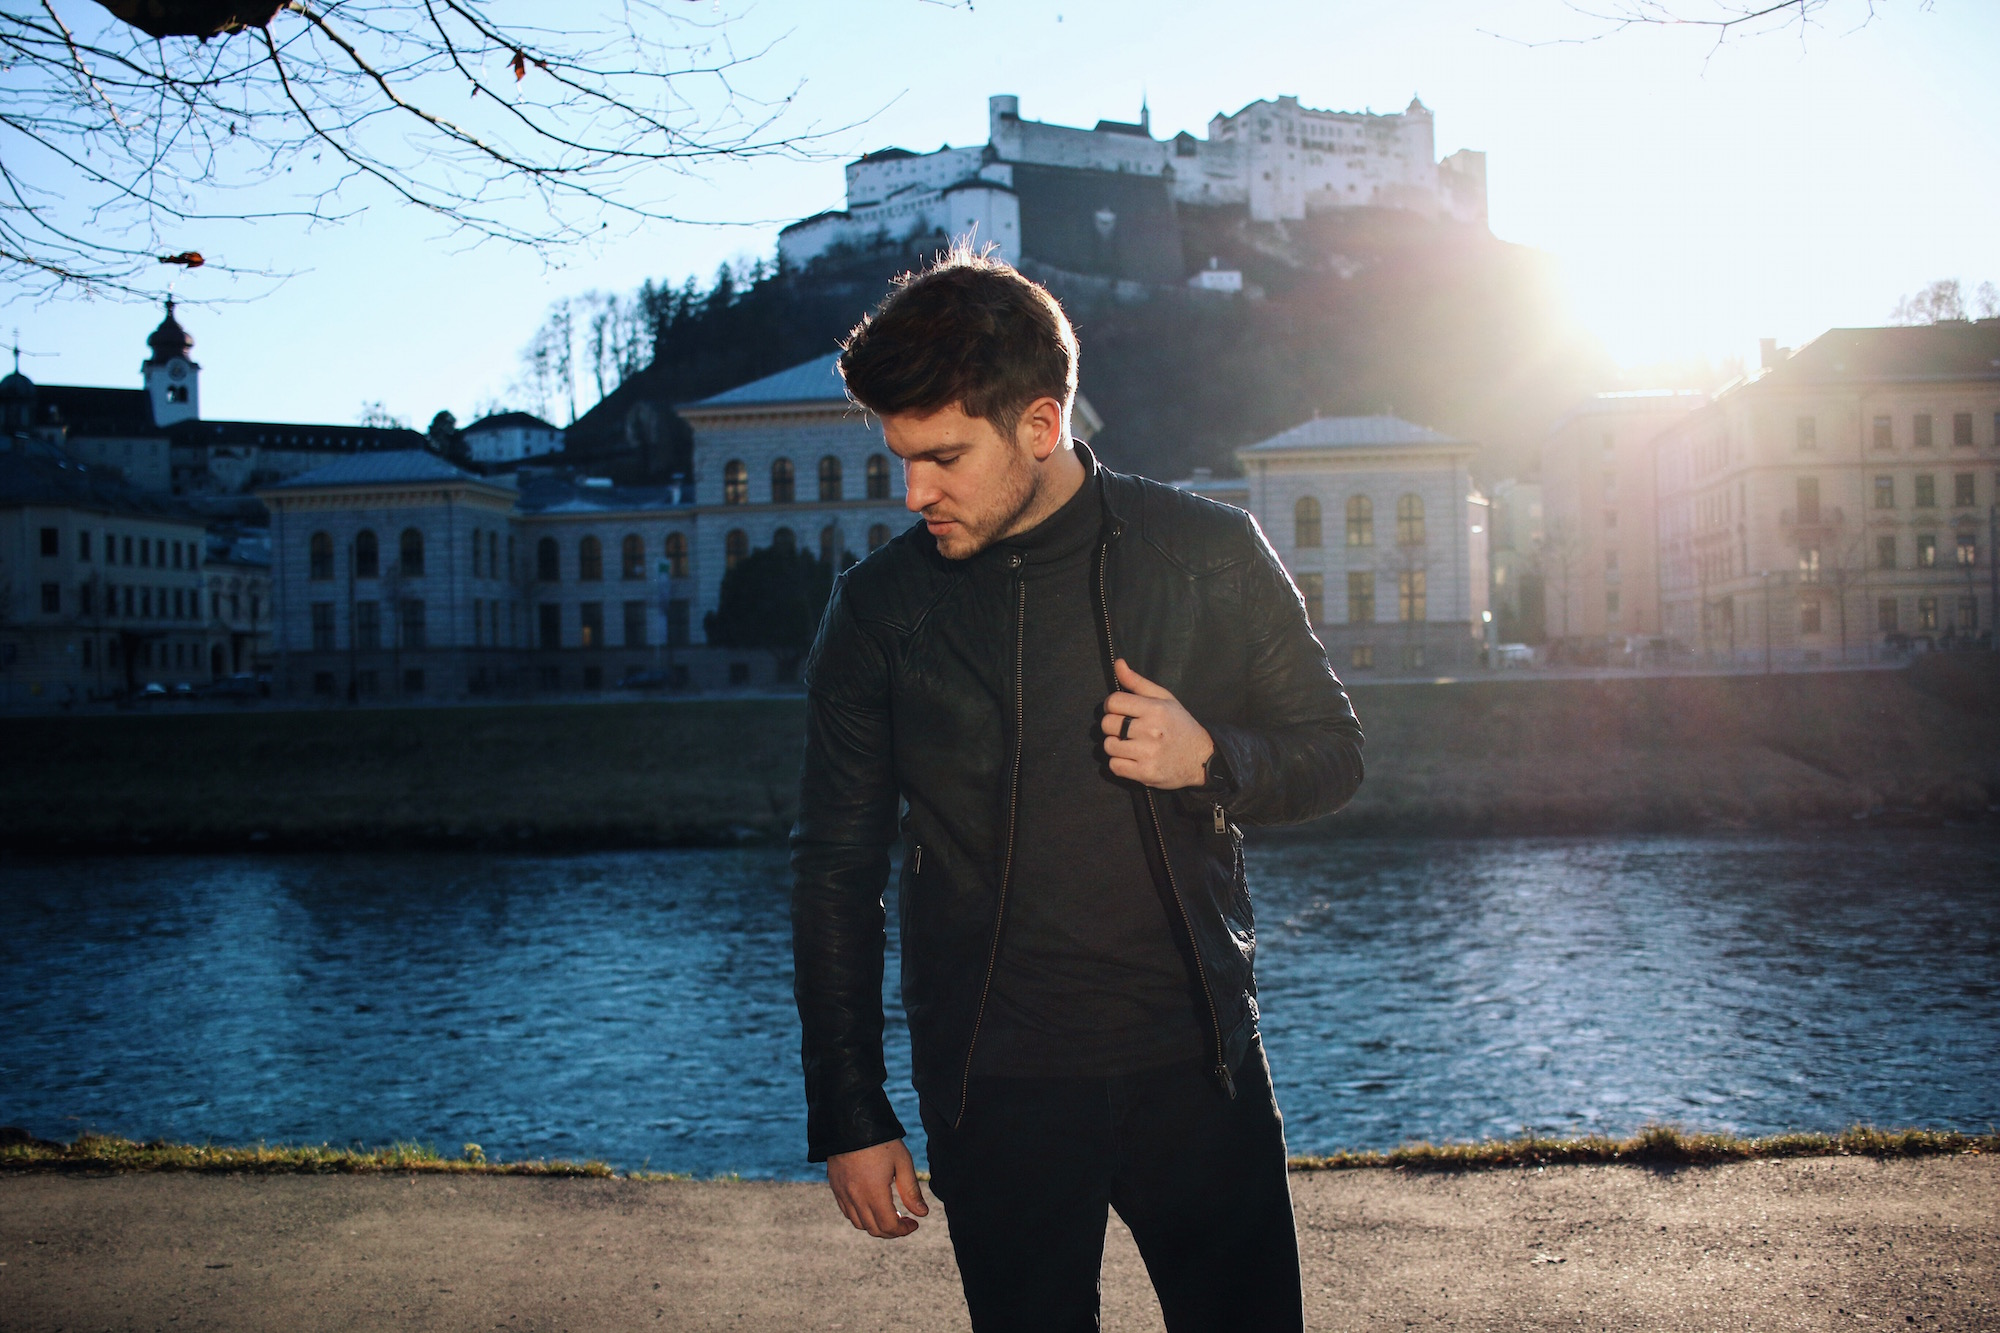 All Black Look by Selected Homme Lederjacke Rollkragenpullover und Chelsea Boots _ Meanwhile in Awesometown _ Wiener Blogger _ Maleblogger _ Mens Fashion Blogger1